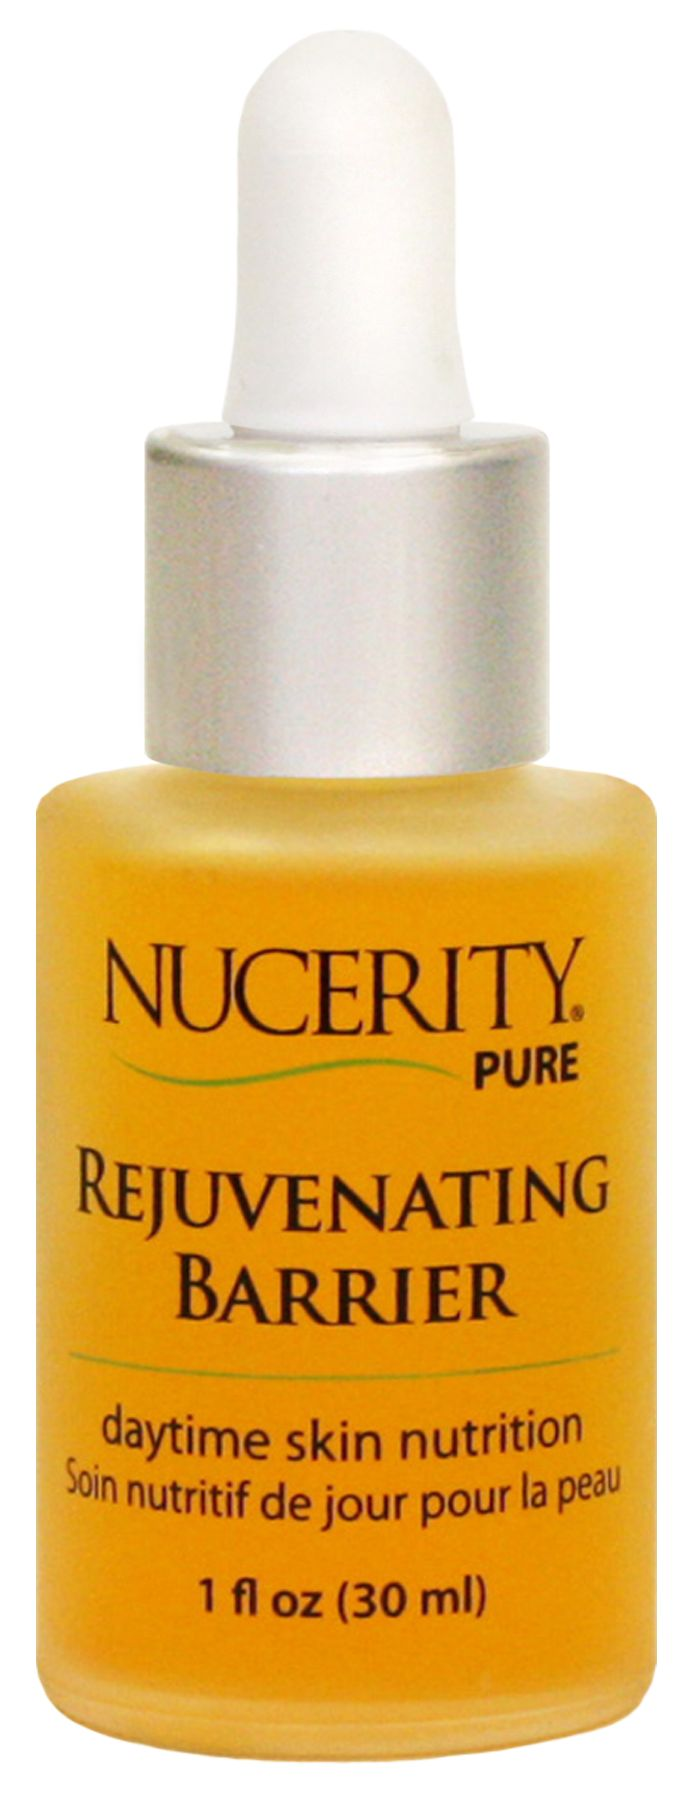 "Rejuvenating Barrier Skin-Nutrition. This revolutionary anti-aging barrier solution combines the amazing Trehalose extract from desert ""resurrection"" plants to rejuvenate damaged skin and powerful natural Lutein from Asian flowers to infuse vital nutrition and provide an oil-free barrier of protection."